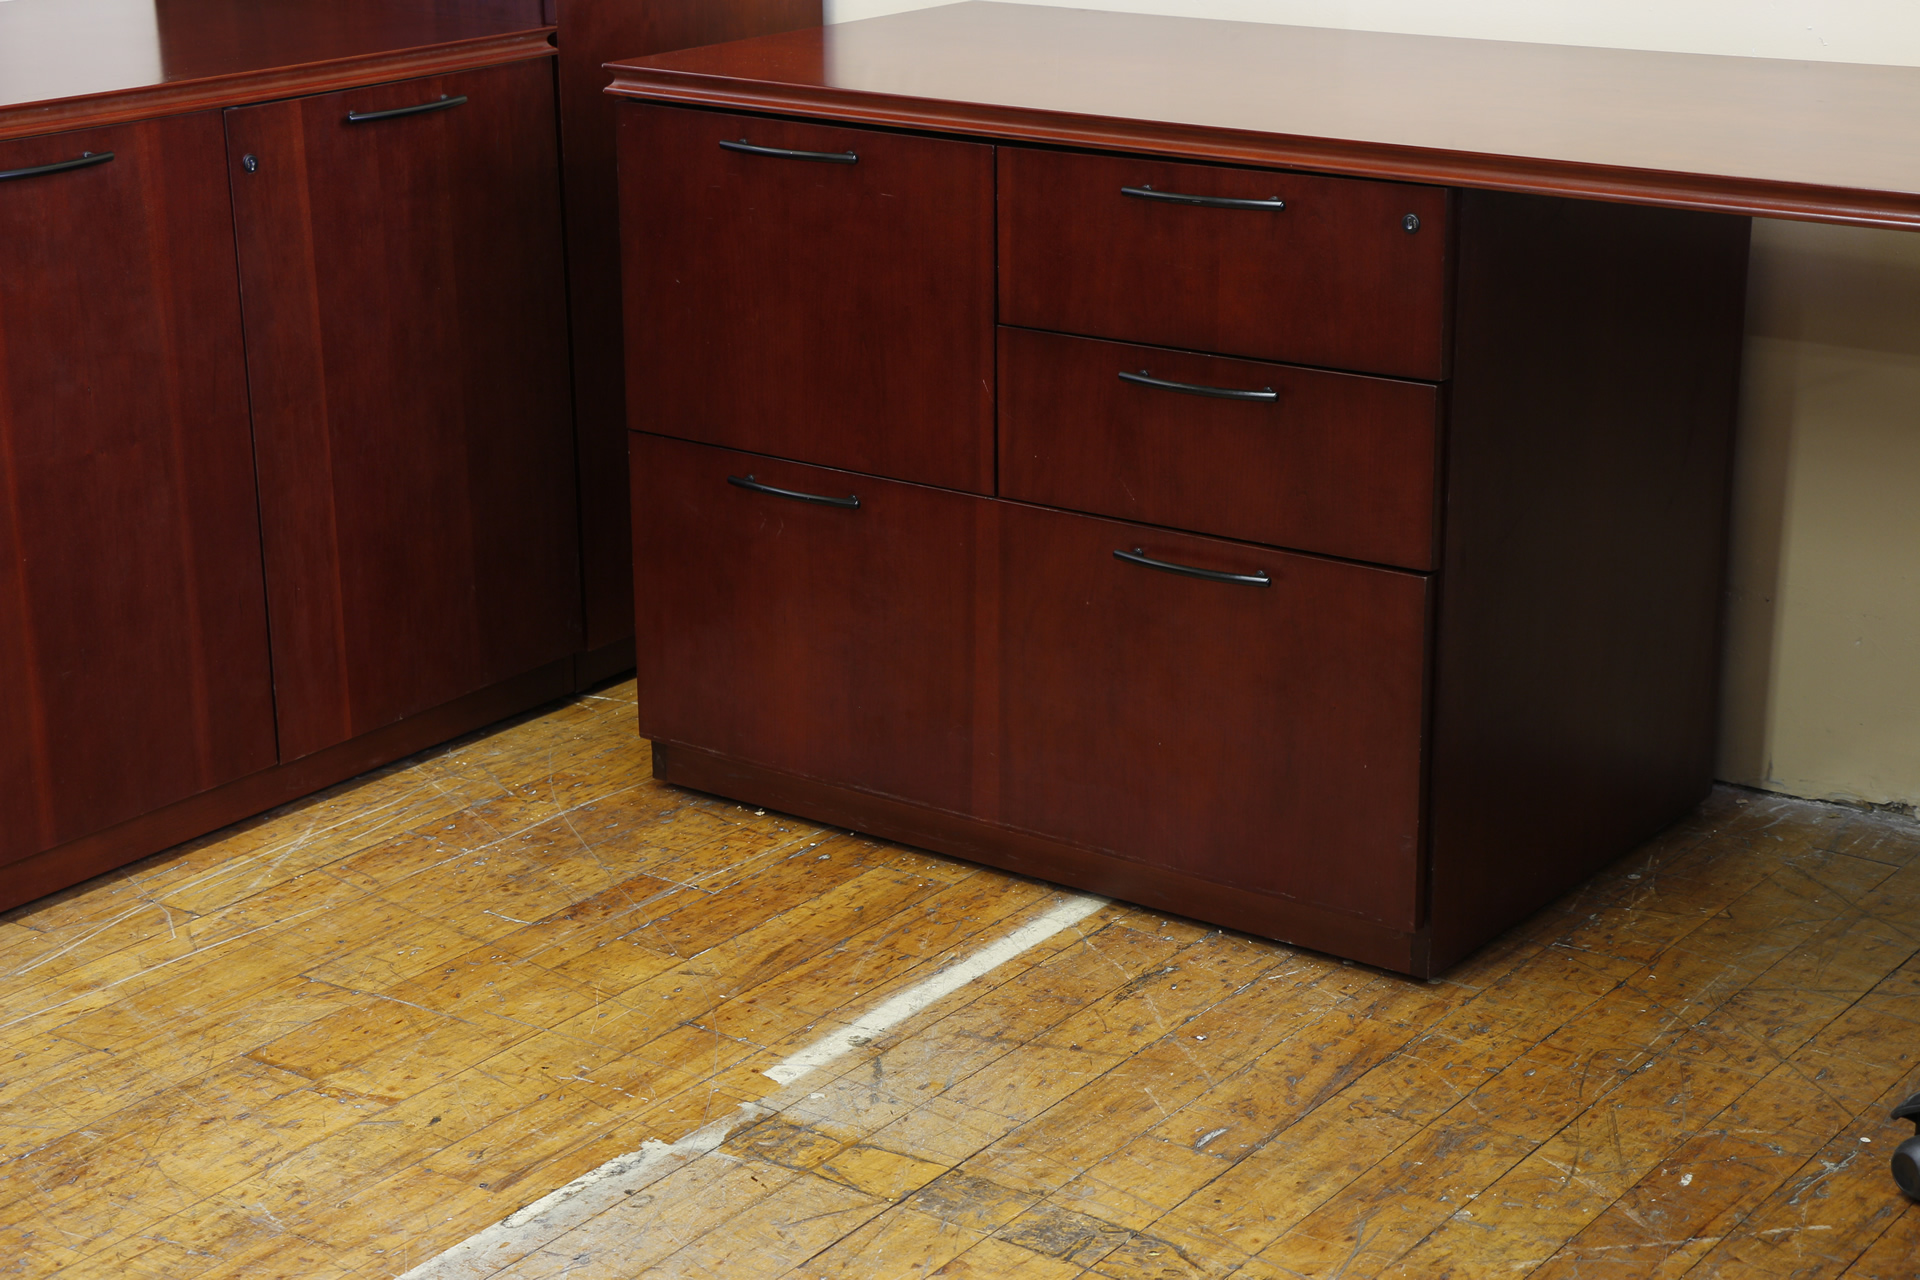 peartreeofficefurniture_peartreeofficefurniture_mg_4216.jpg